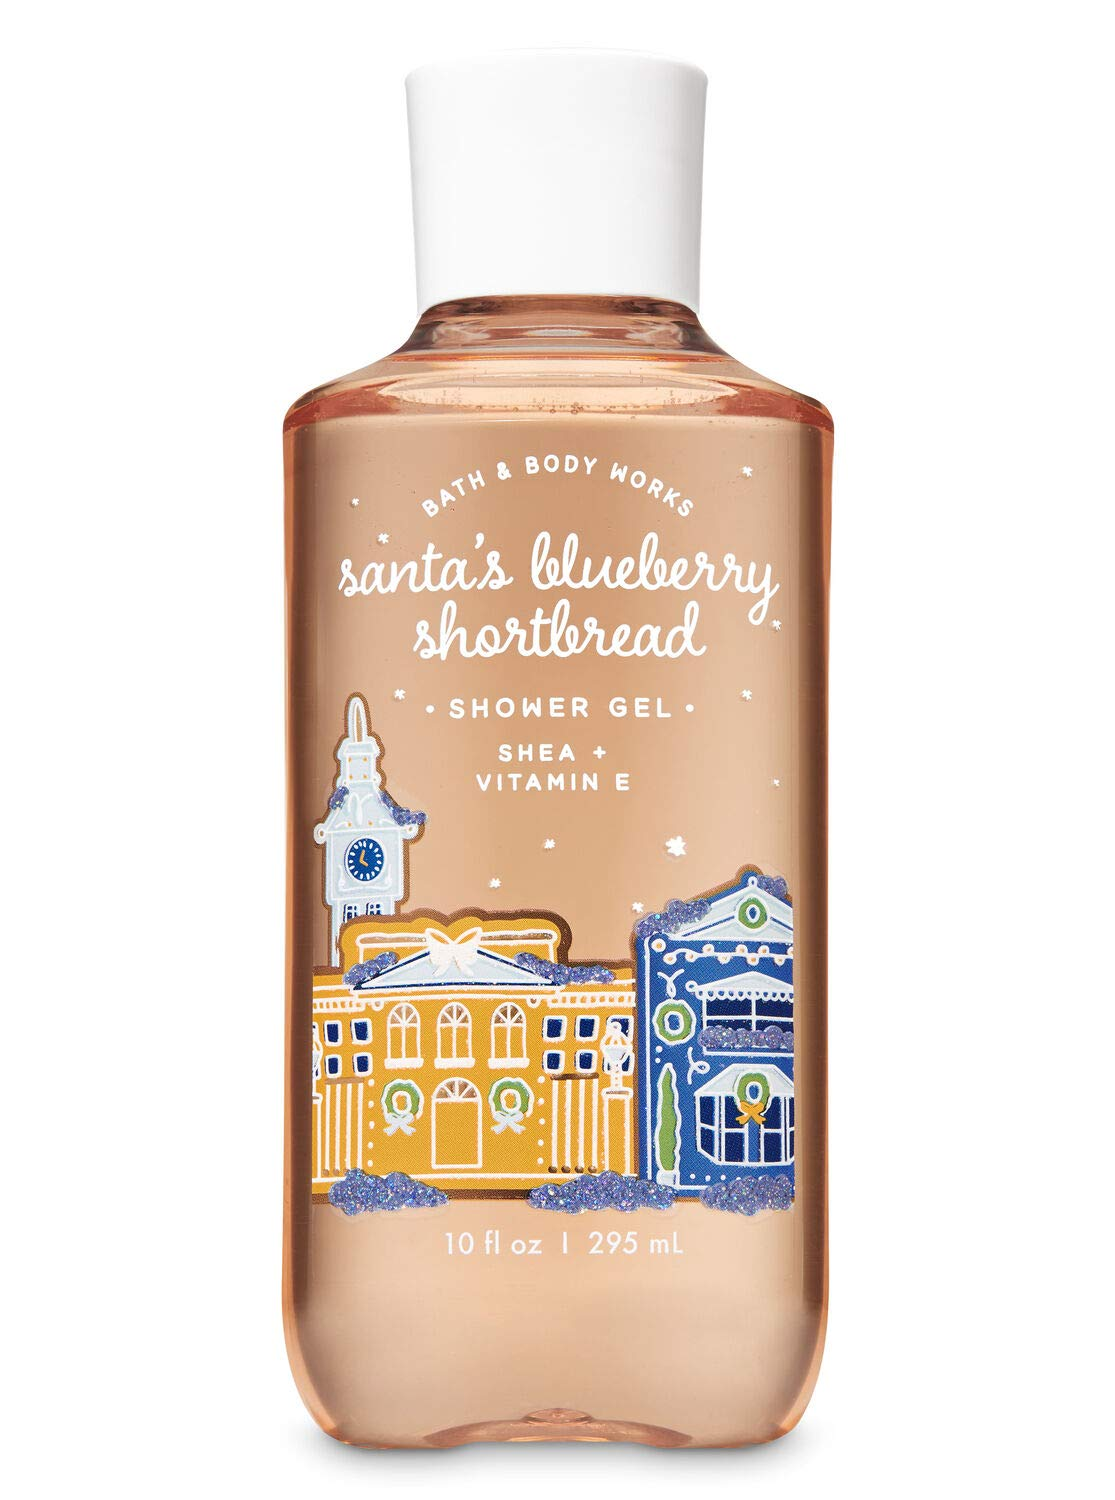 Bath Phoenix Mall and Body Works Santa's Gel Shortbread security Shower with Blueberry